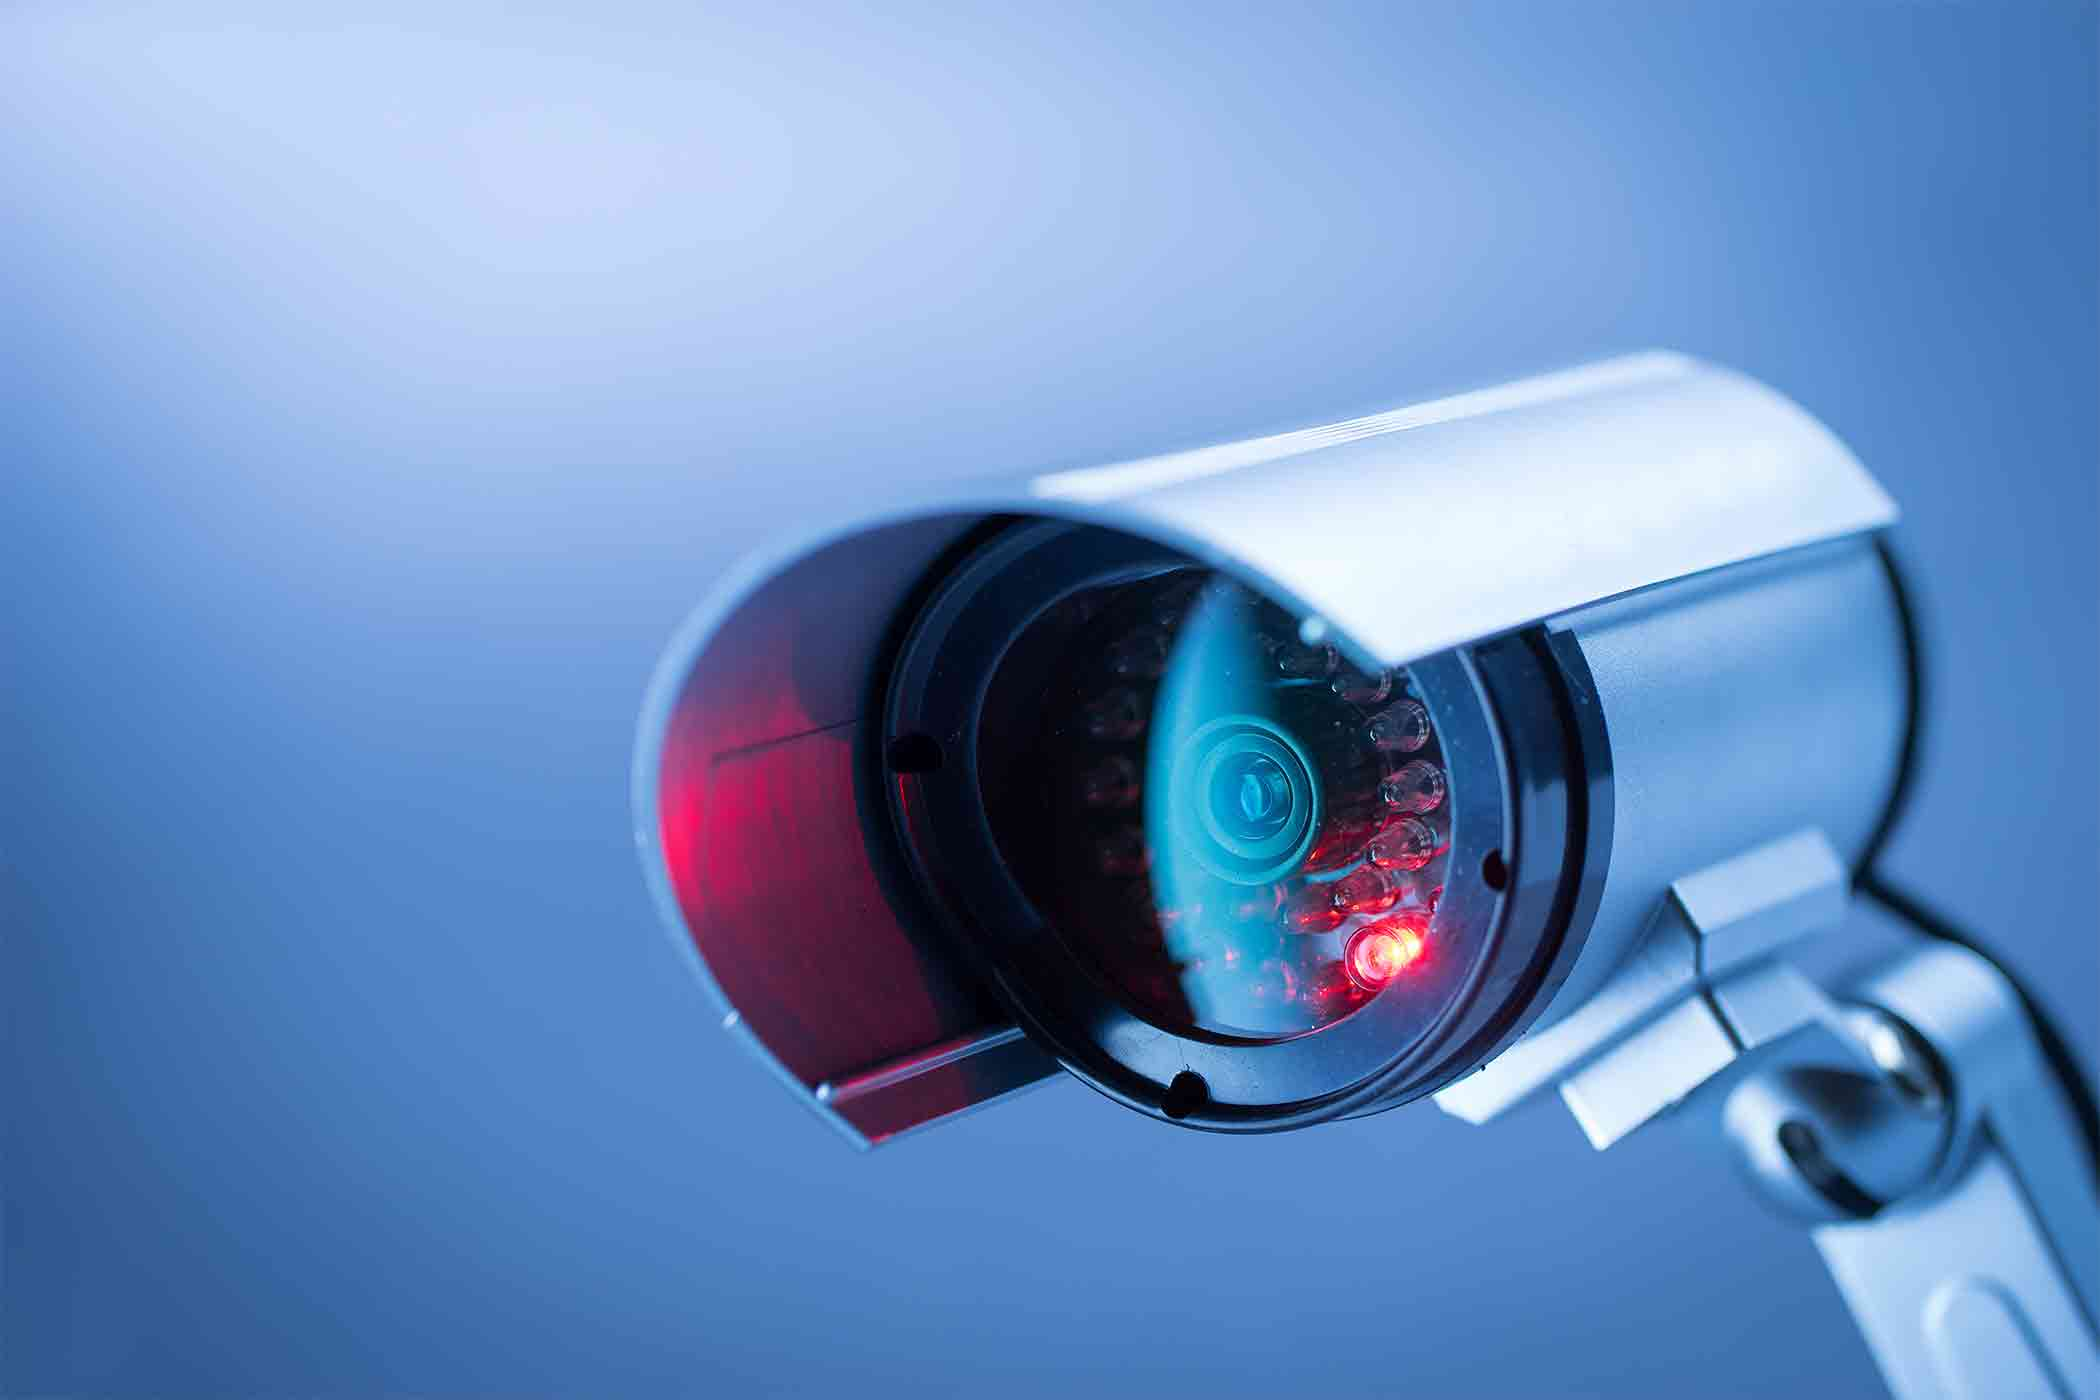 Security Camera Installation Mistakes That May Jeopardize Your Security